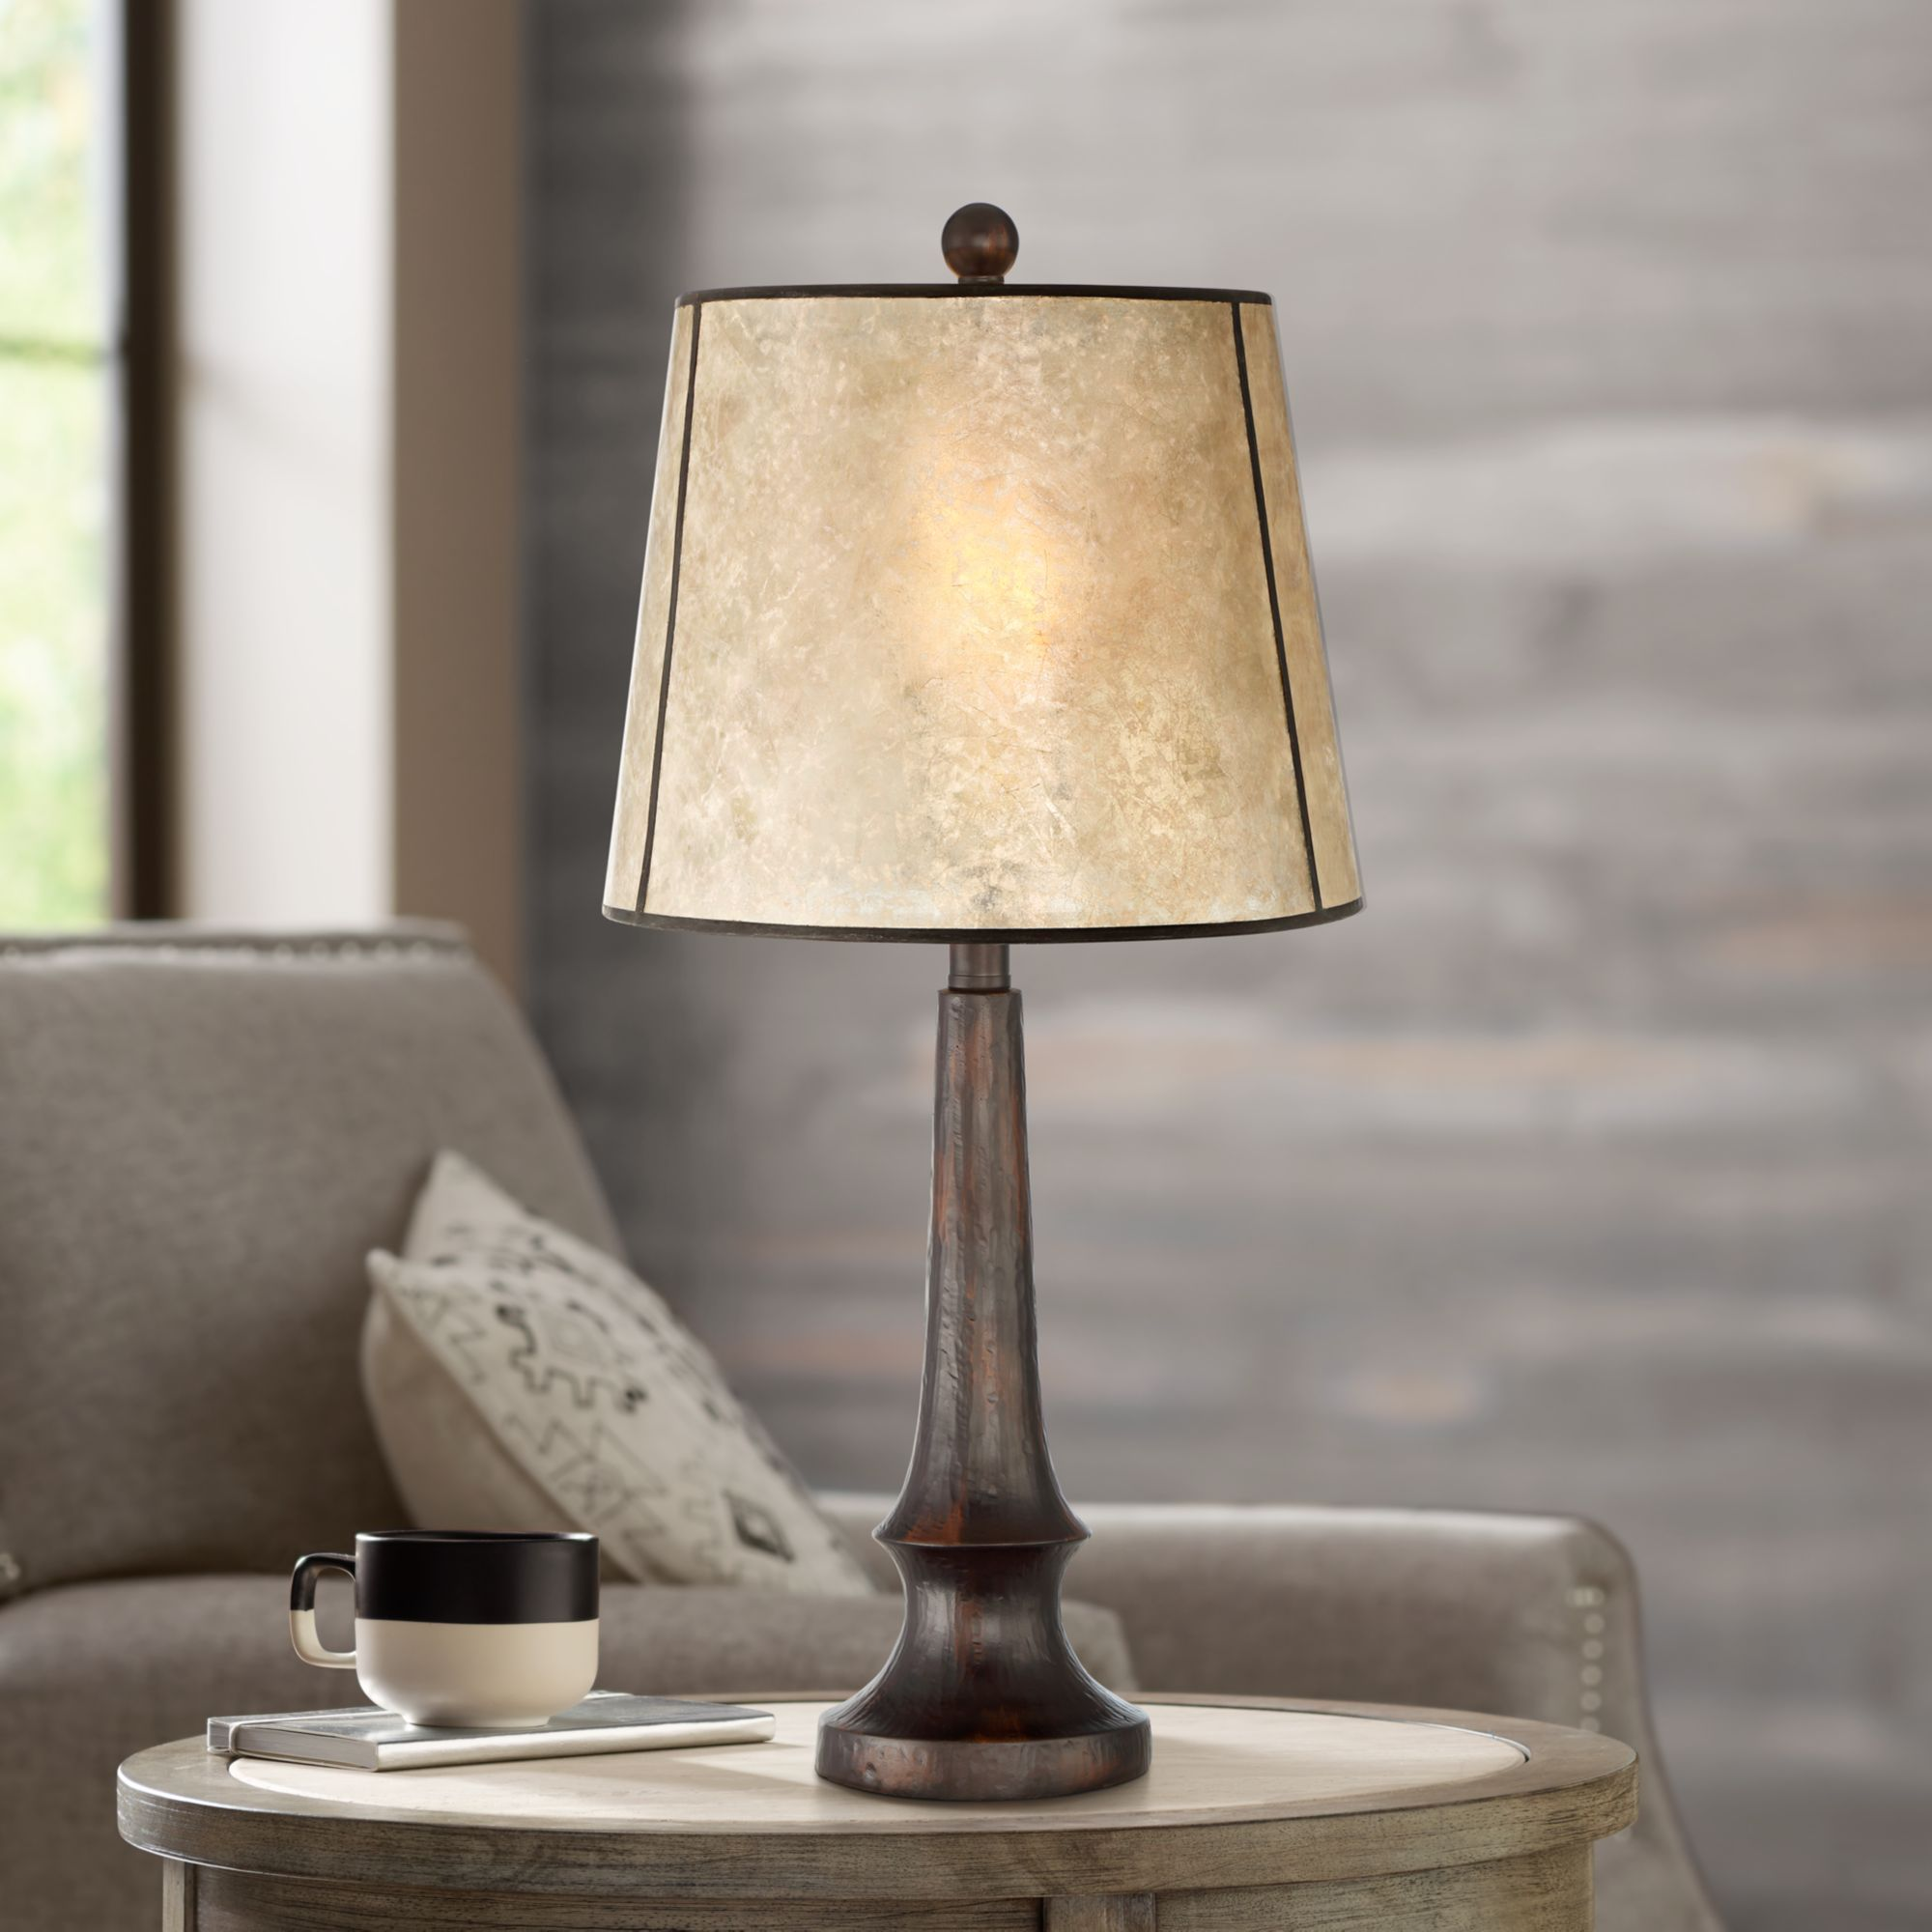 Franklin iron works rustic table lamp aged bronze mica drum shade for living room family bedroom bedside nightstand office walmart com